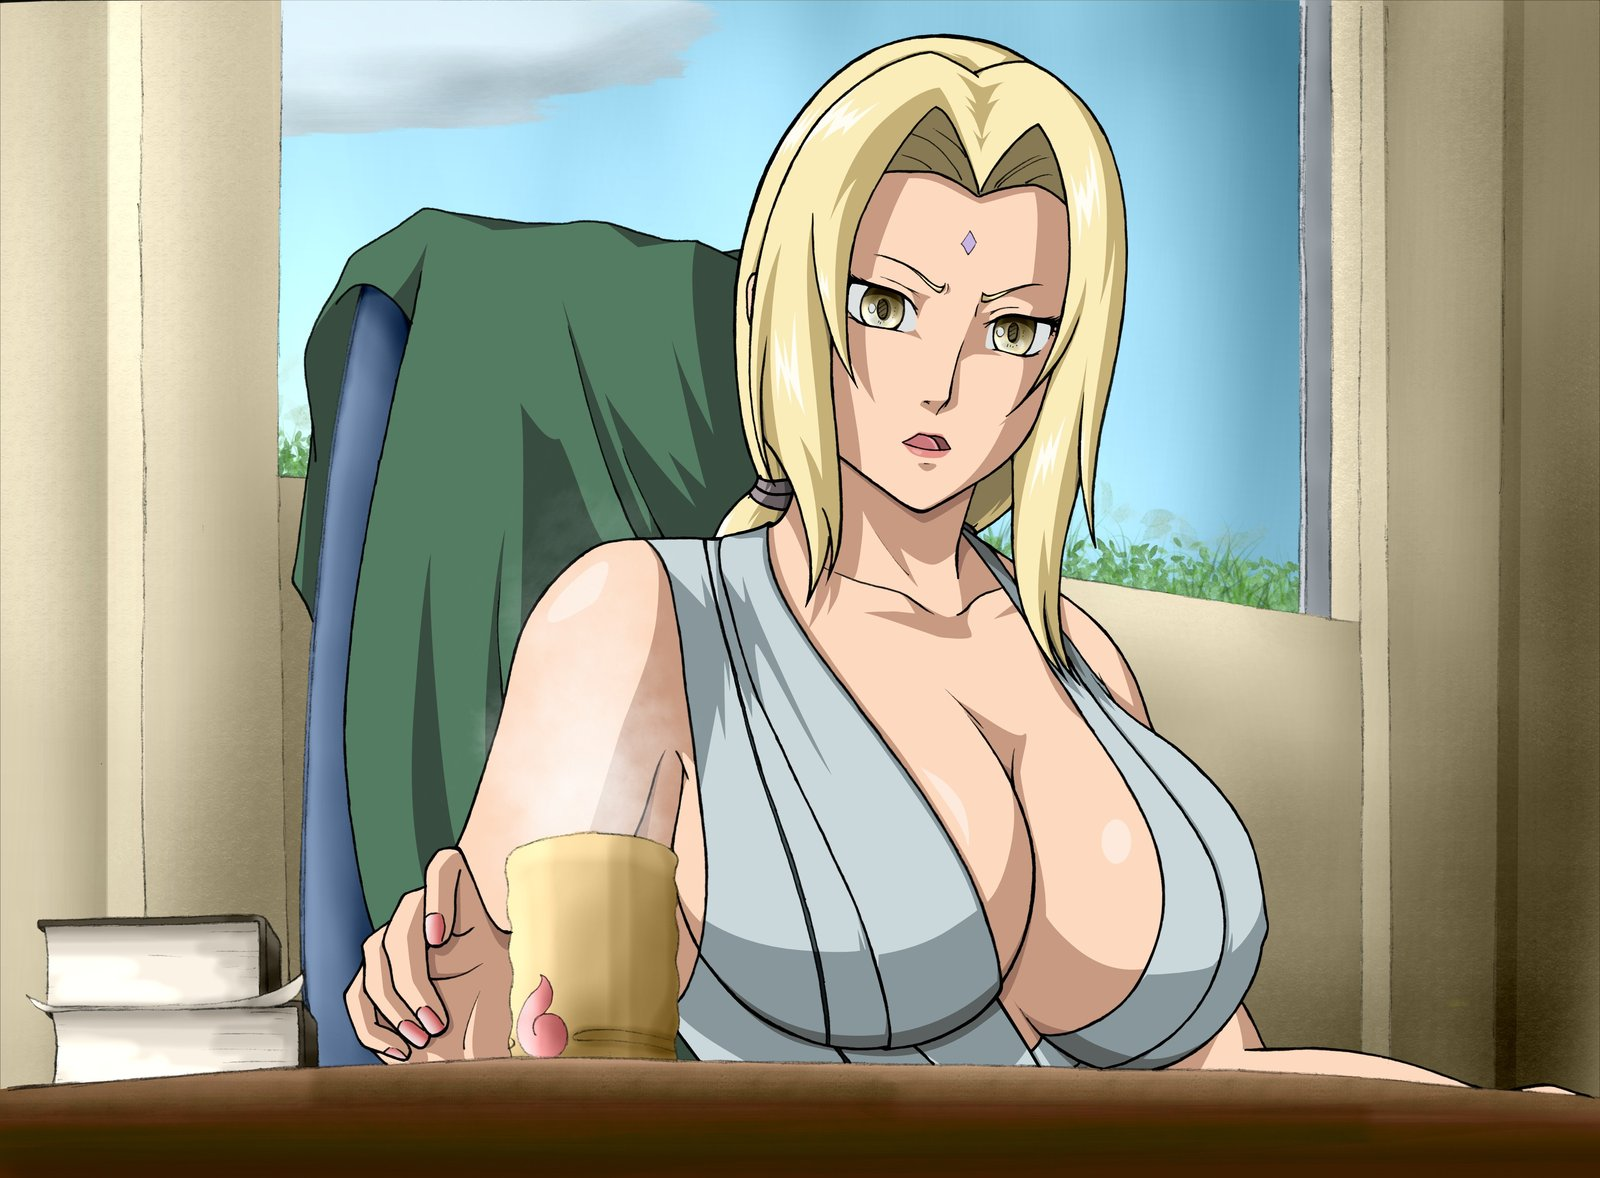 http://4.bp.blogspot.com/_8x5c8otAZyA/TQobcyy0YNI/AAAAAAAAAEE/BNHk0Es7AT8/s1600/Coffee_time_for_Tsunade_by_KaenDD.jpg